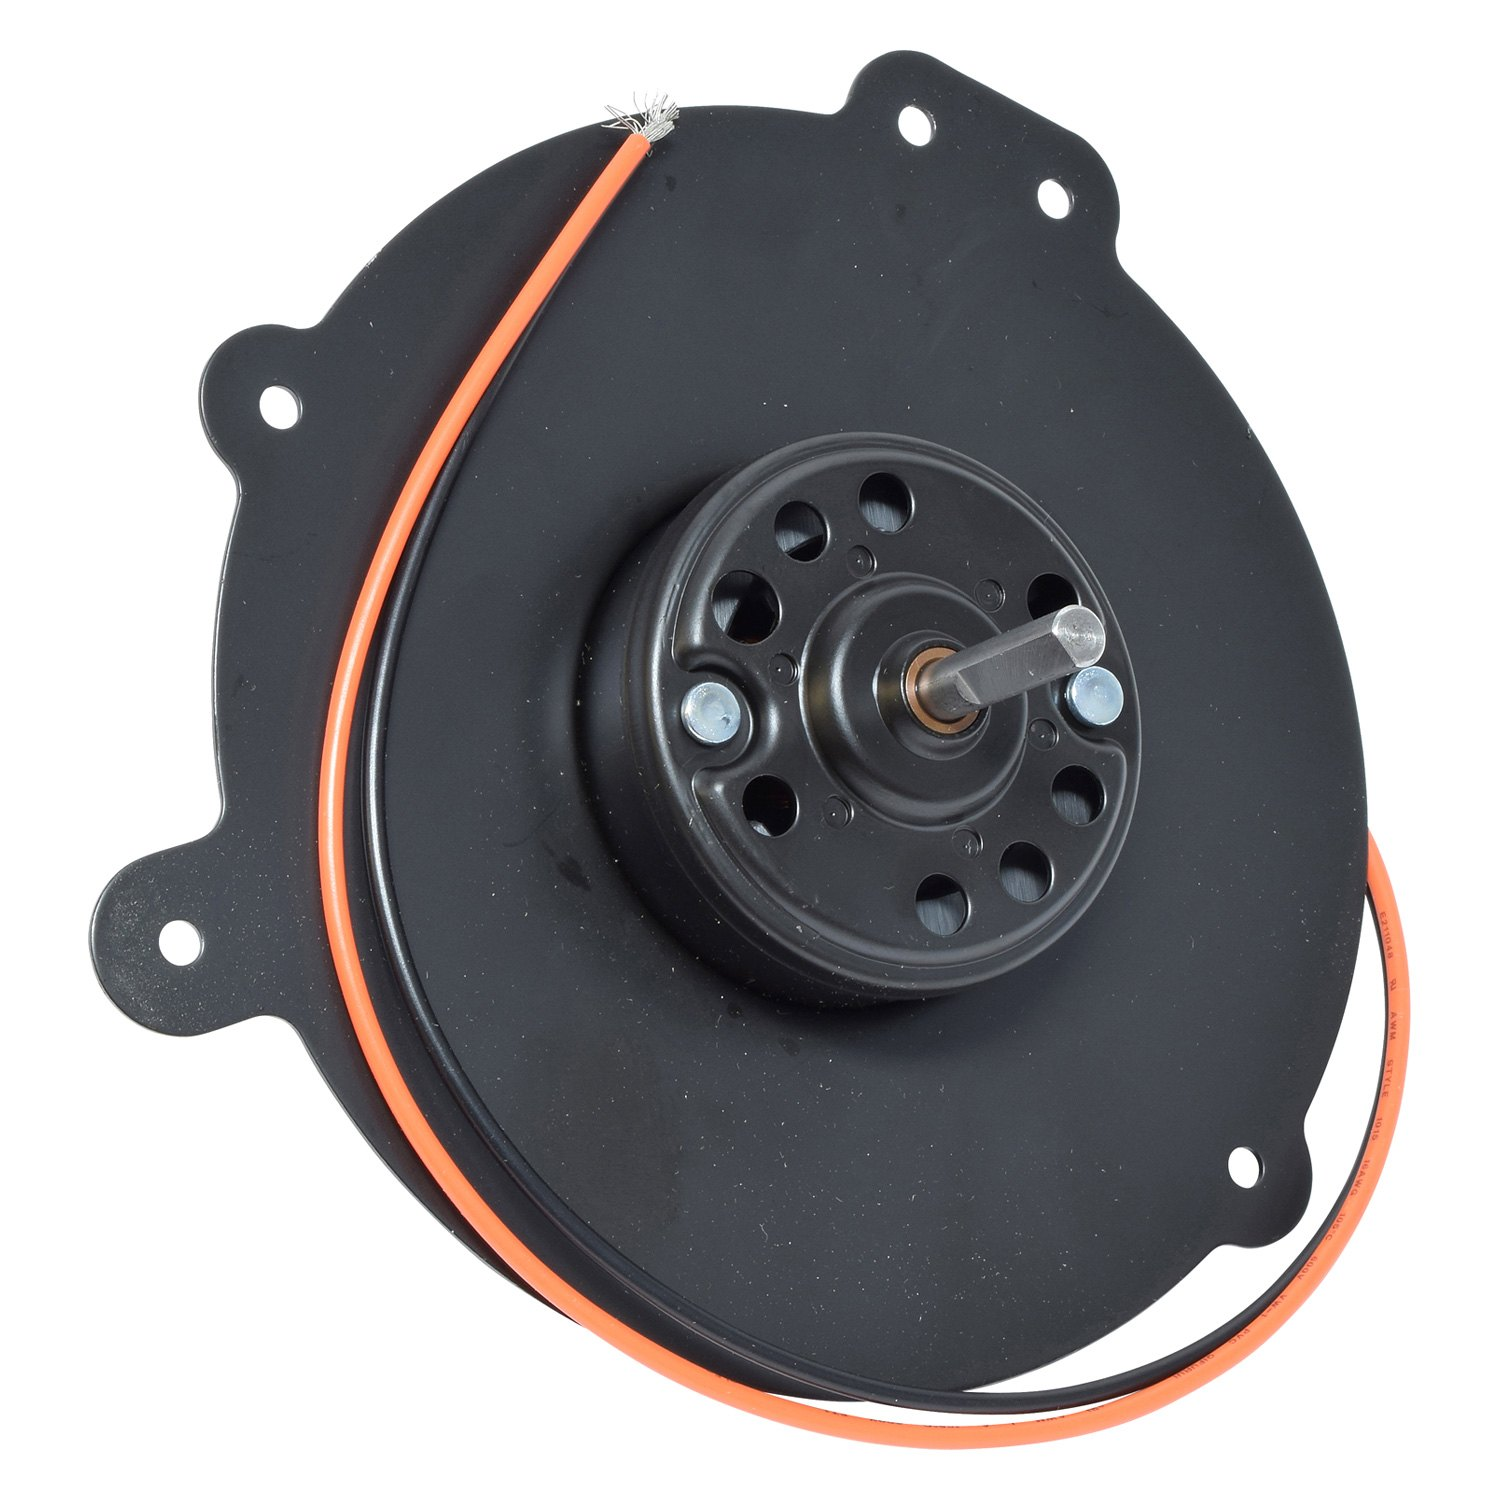 Uac hvac blower motor for Air conditioning blower motor